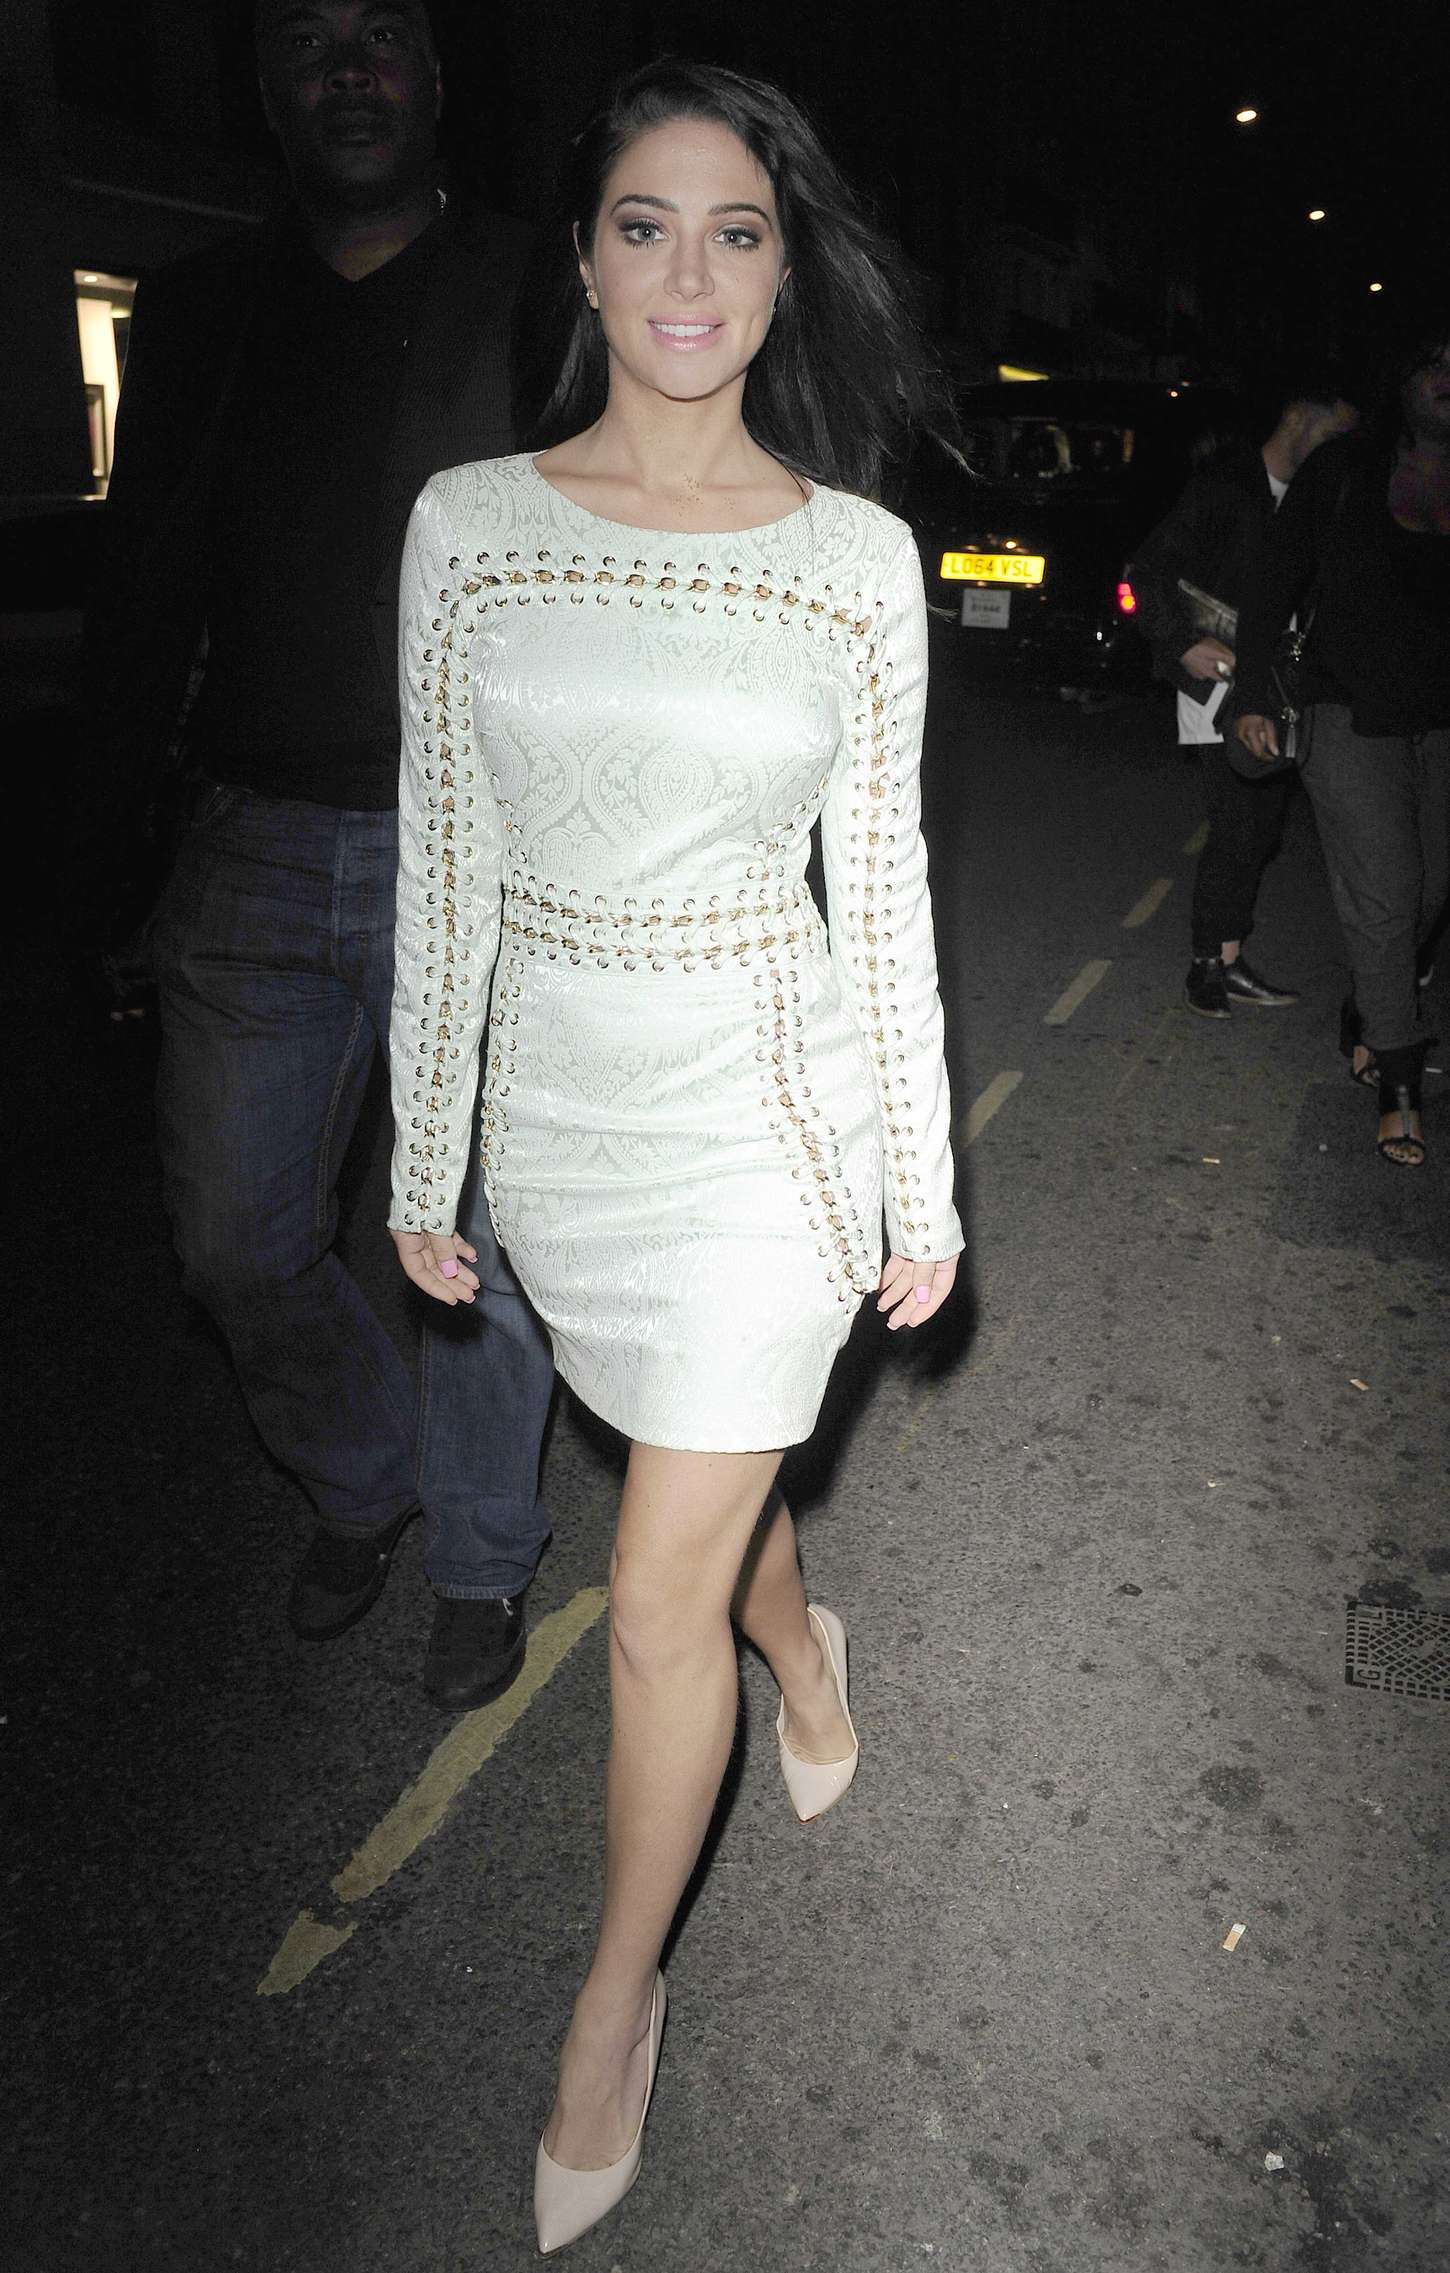 Tulisa Contostavlos 2015 : Tulisa Contostavlos in Tight Mini Dress -05